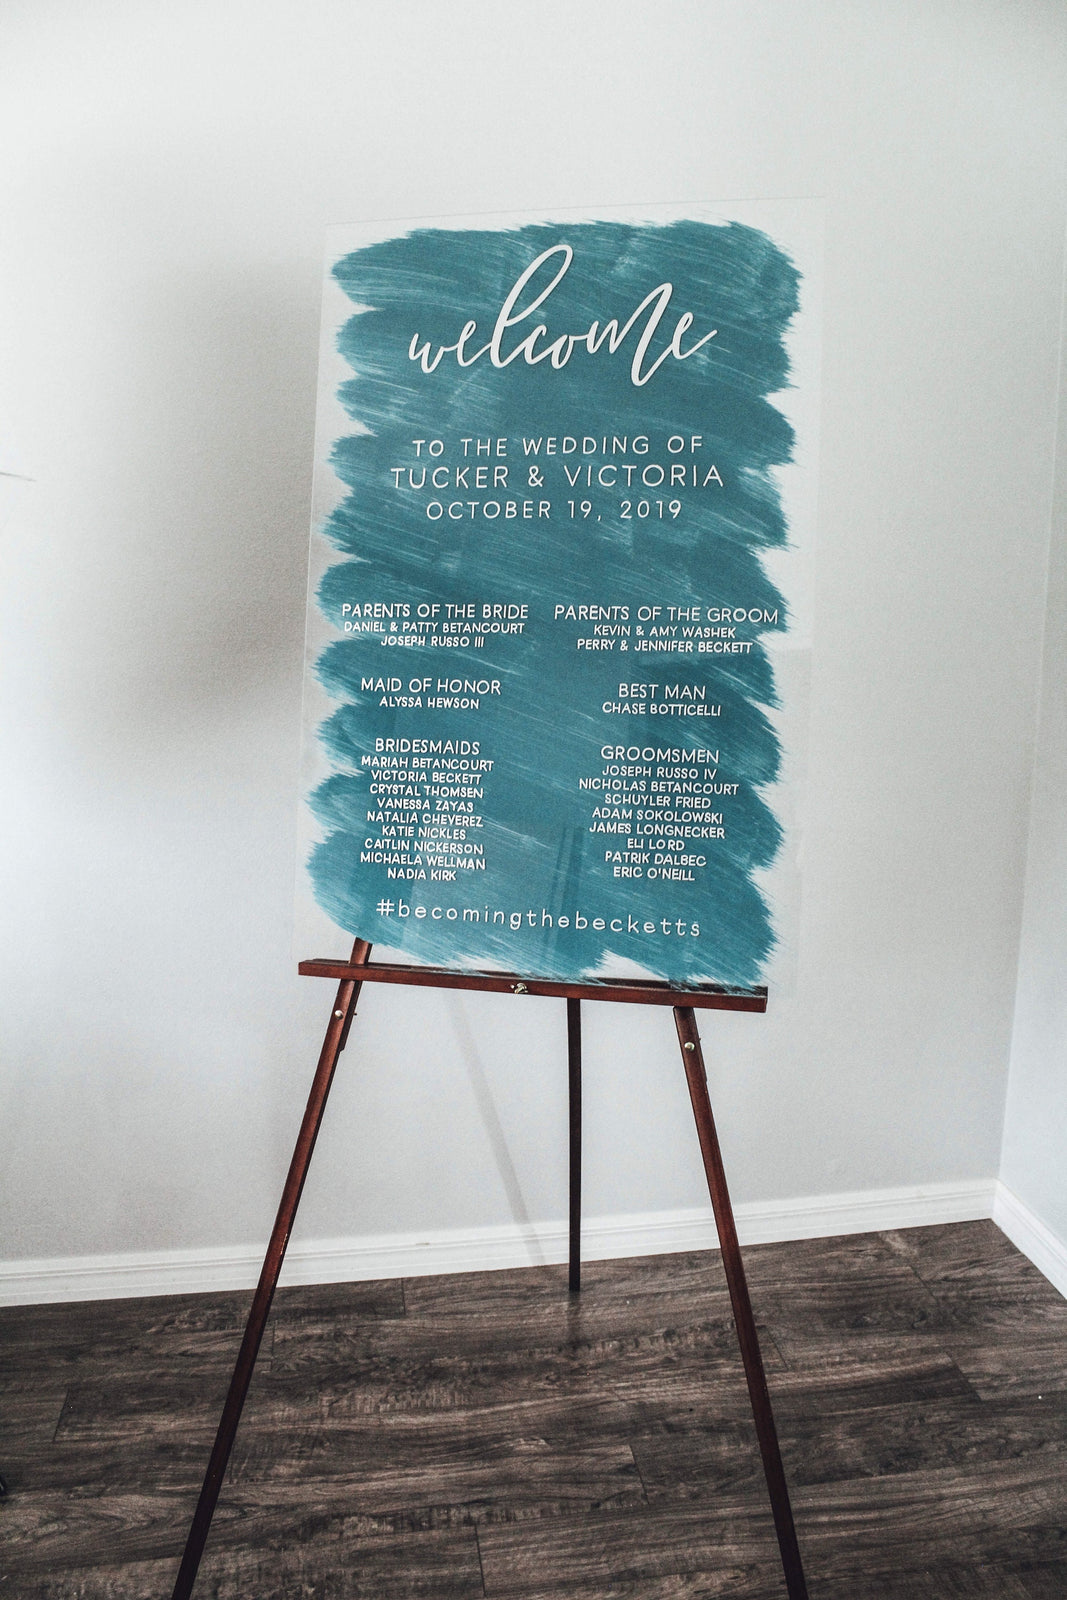 Wedding Program | Acrylic Wedding Sign | Wedding Welcome Sign | Acrylic Welcome Sign